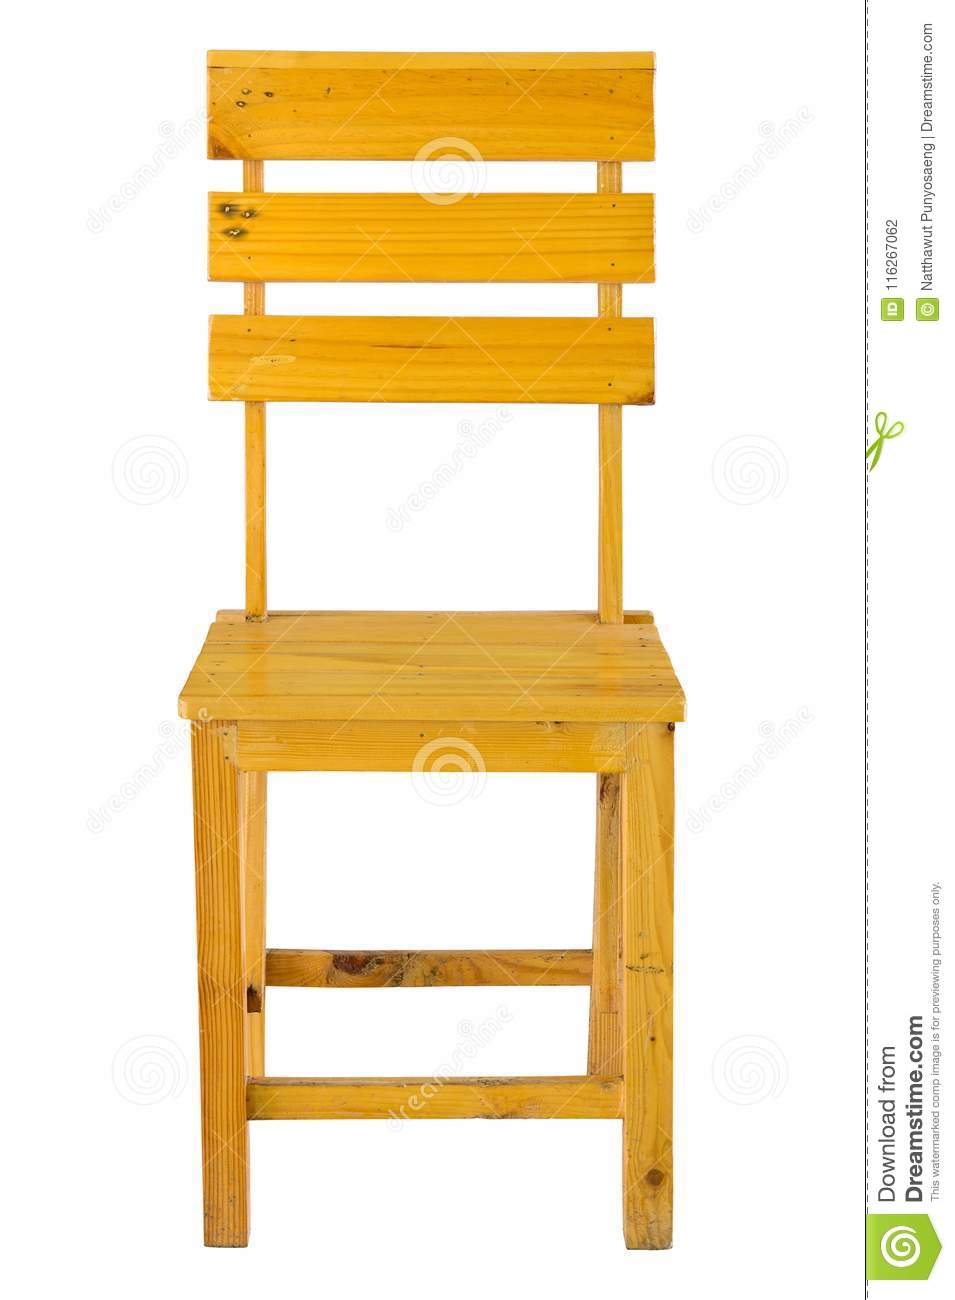 Wooden Chair Front Side View Stock Images - 210 Photos